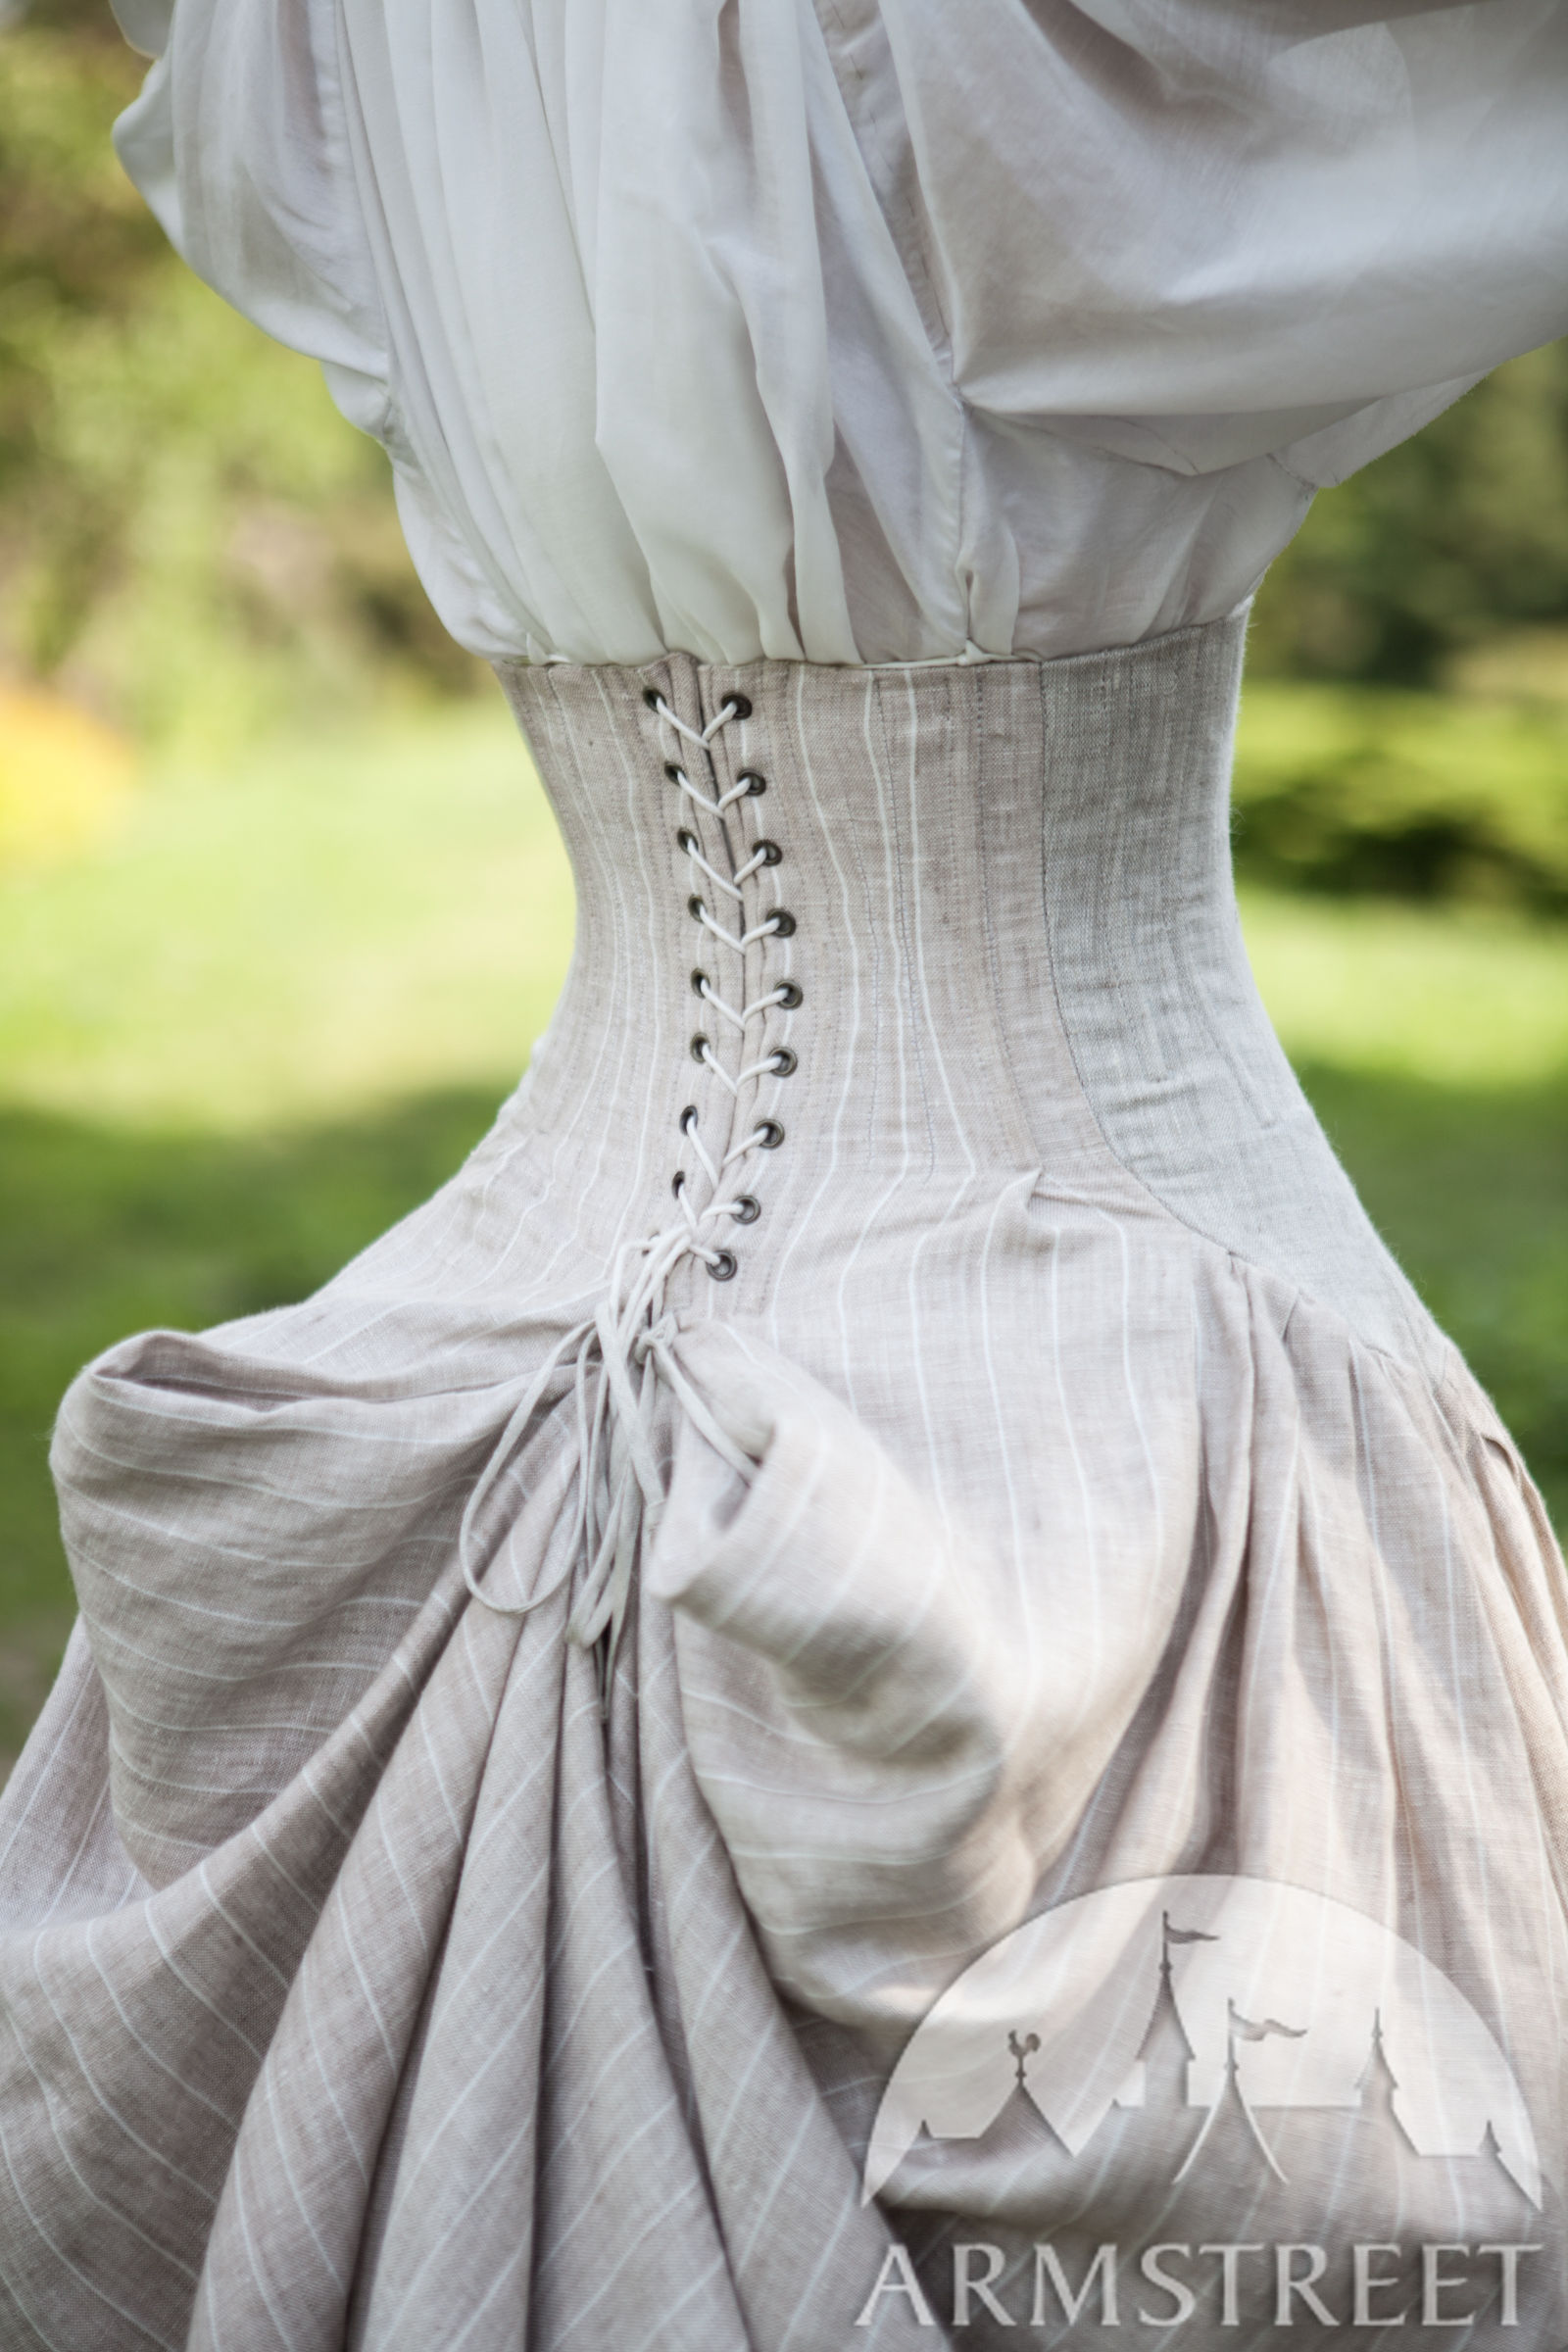 Corset Skirt Quot Snow White Quot For Sale Available In Green